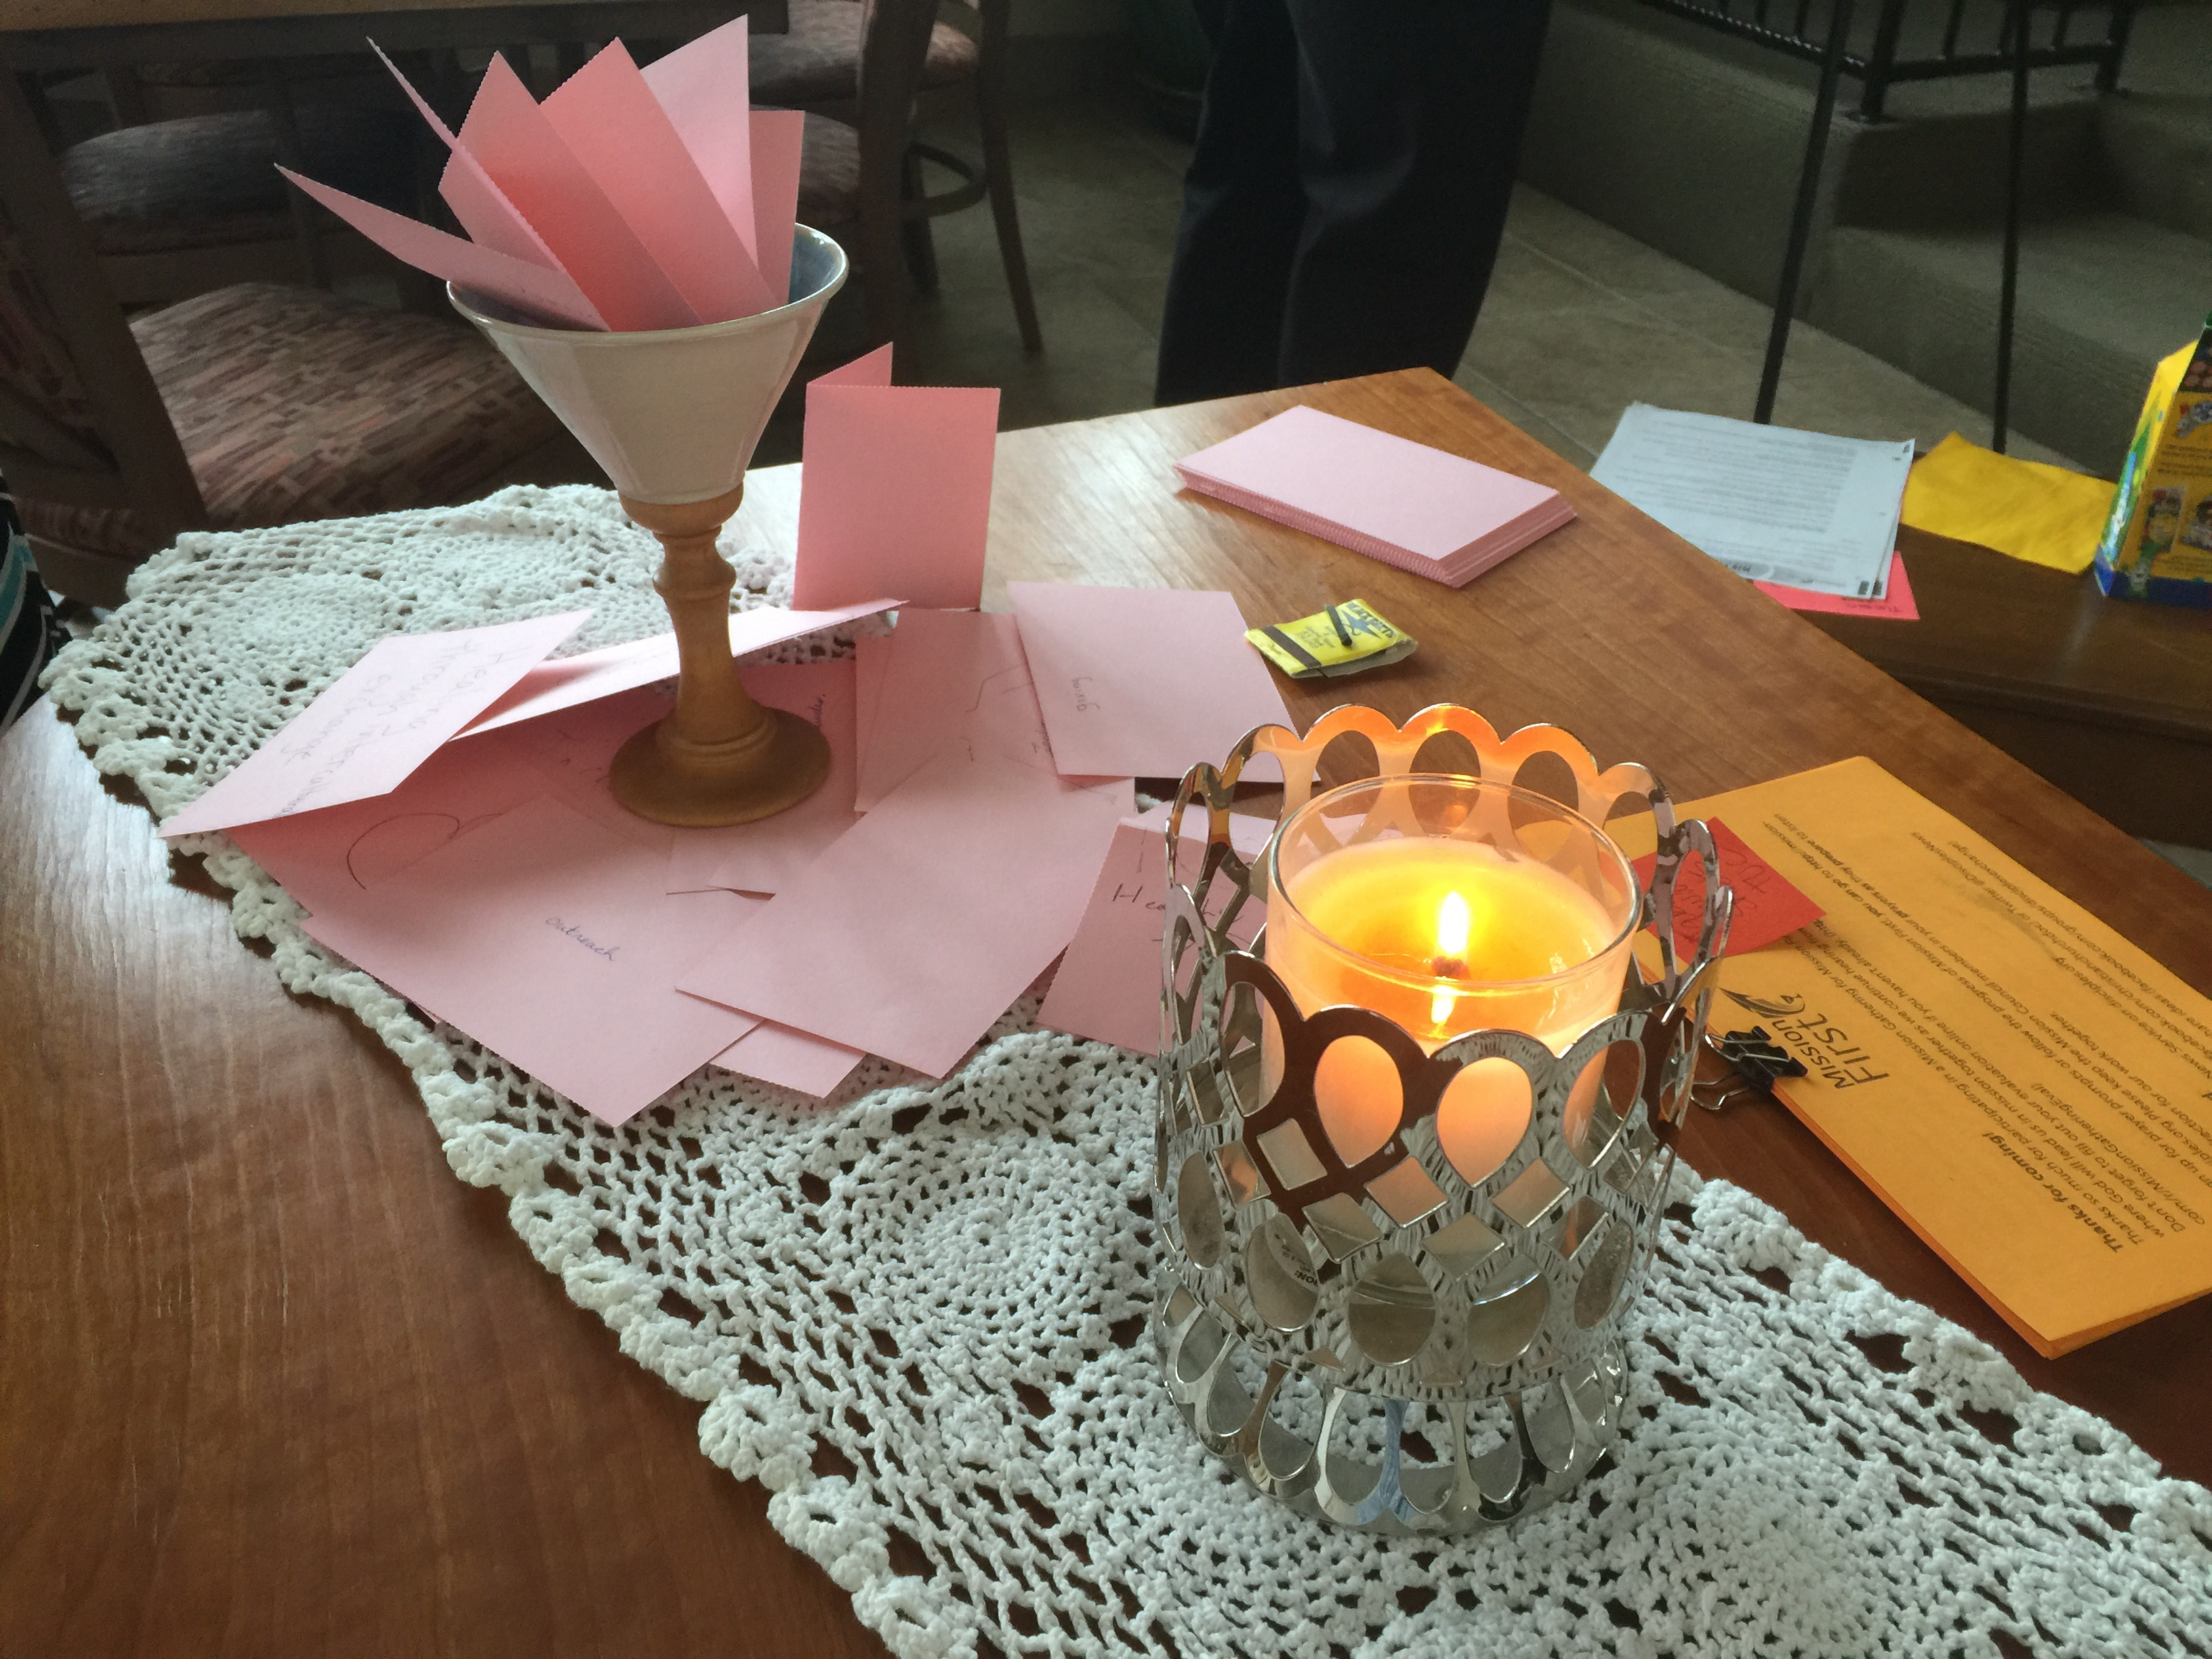 Communion table with Chalice and candle at Mission First event in Tucson